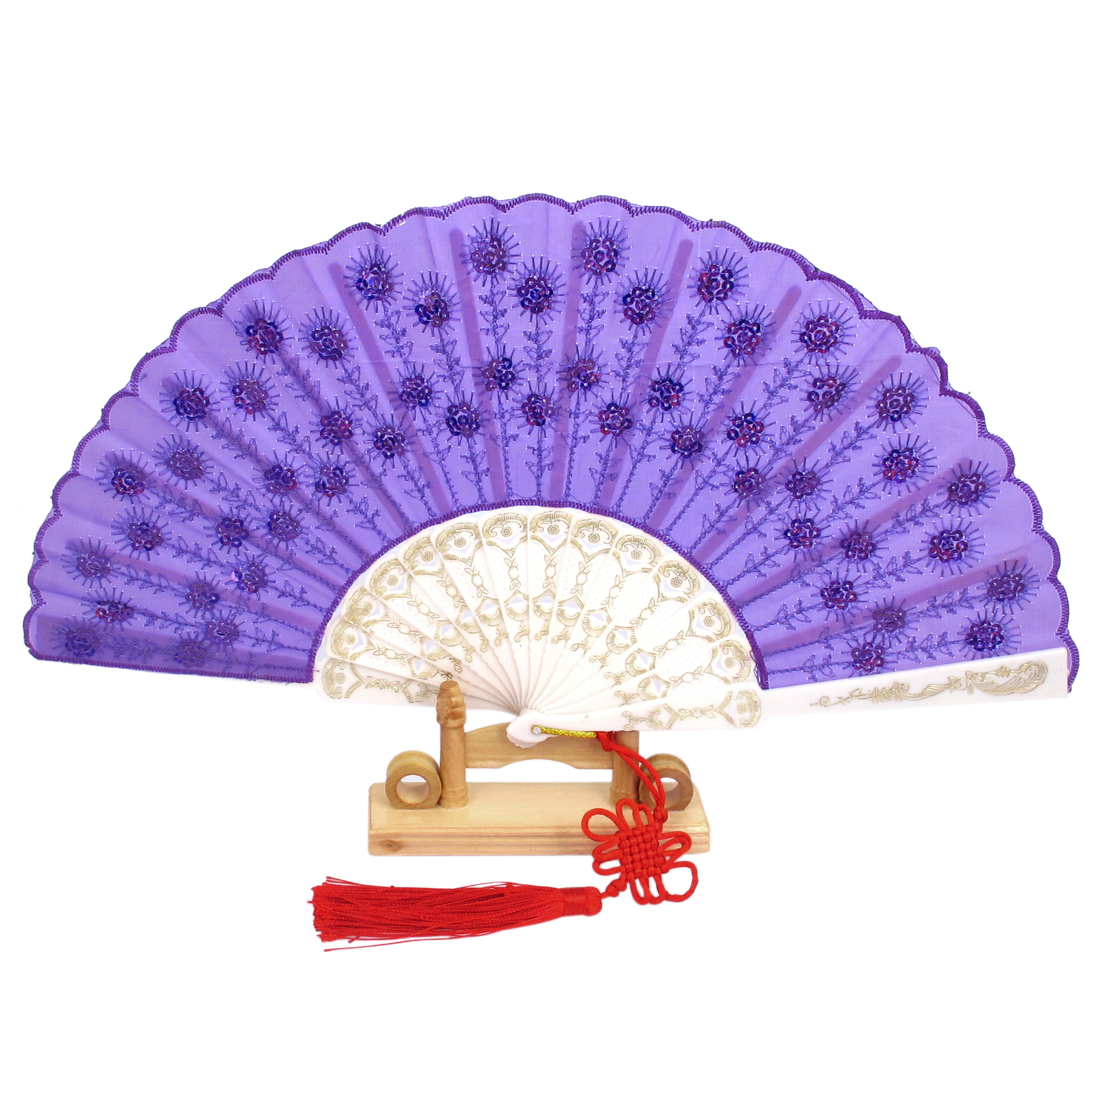 Chinese Knot Sequins Decor Plastic Ribs Folding Hand Fan Purple w Wood Base